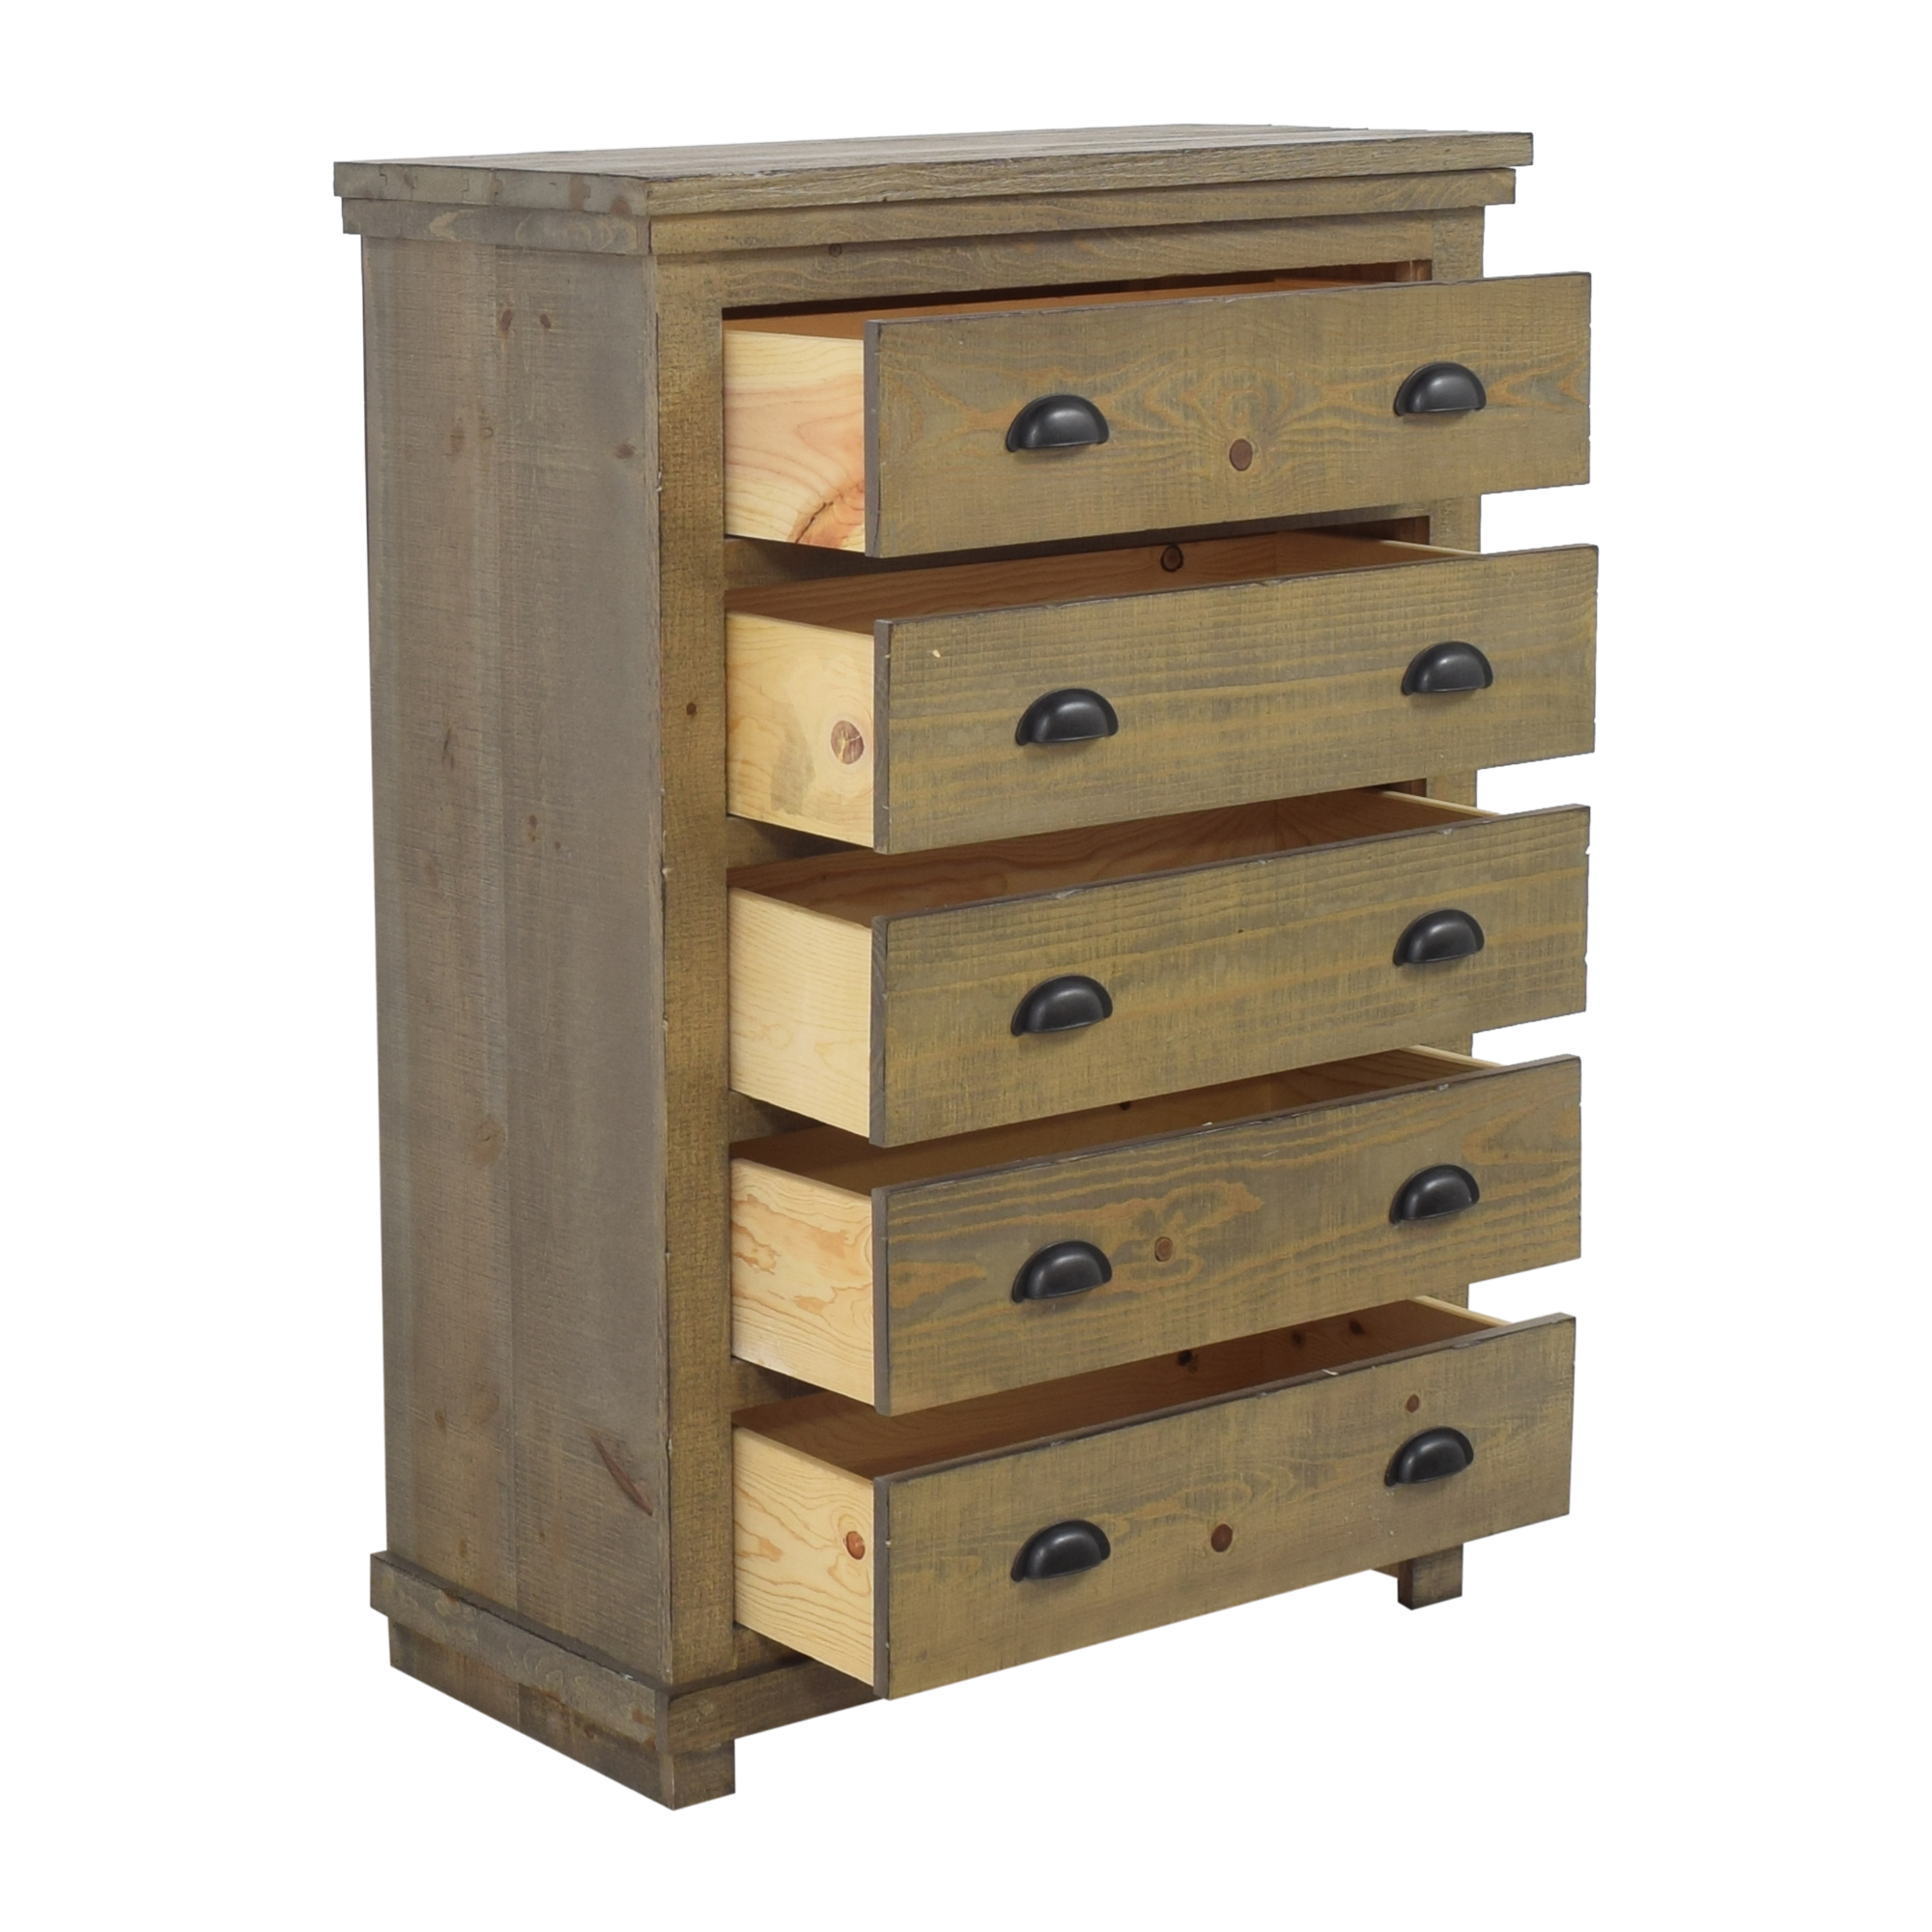 Progressive Furniture Progressive Furniture Willow Five Drawer Chest on sale